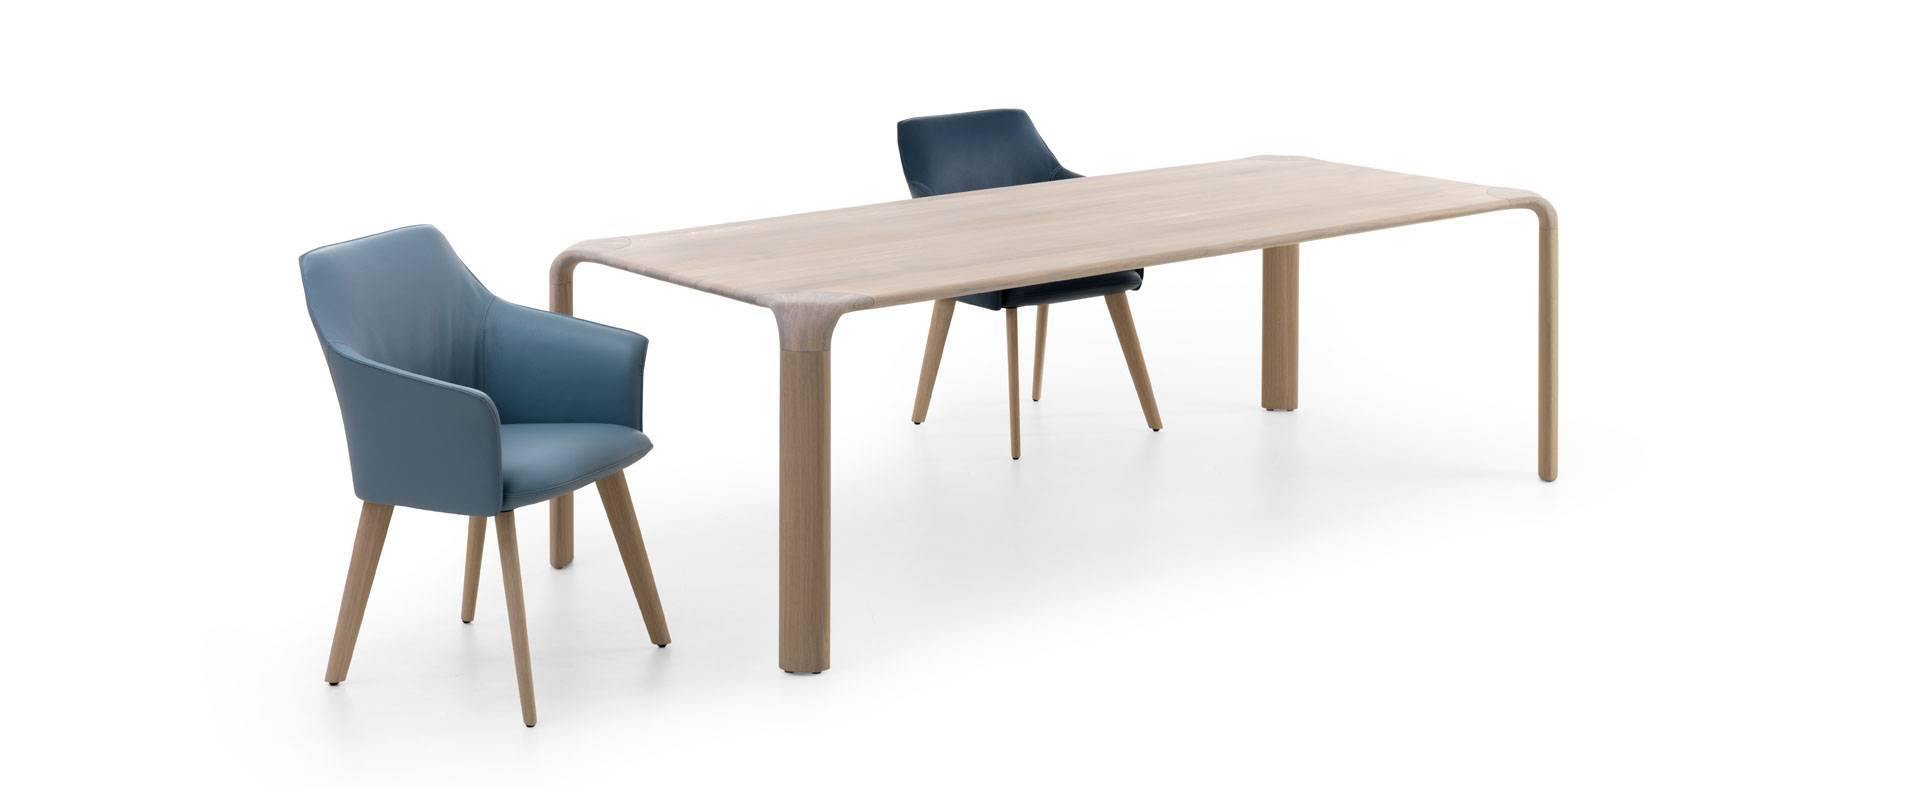 Design Table Aurelio by Leolux